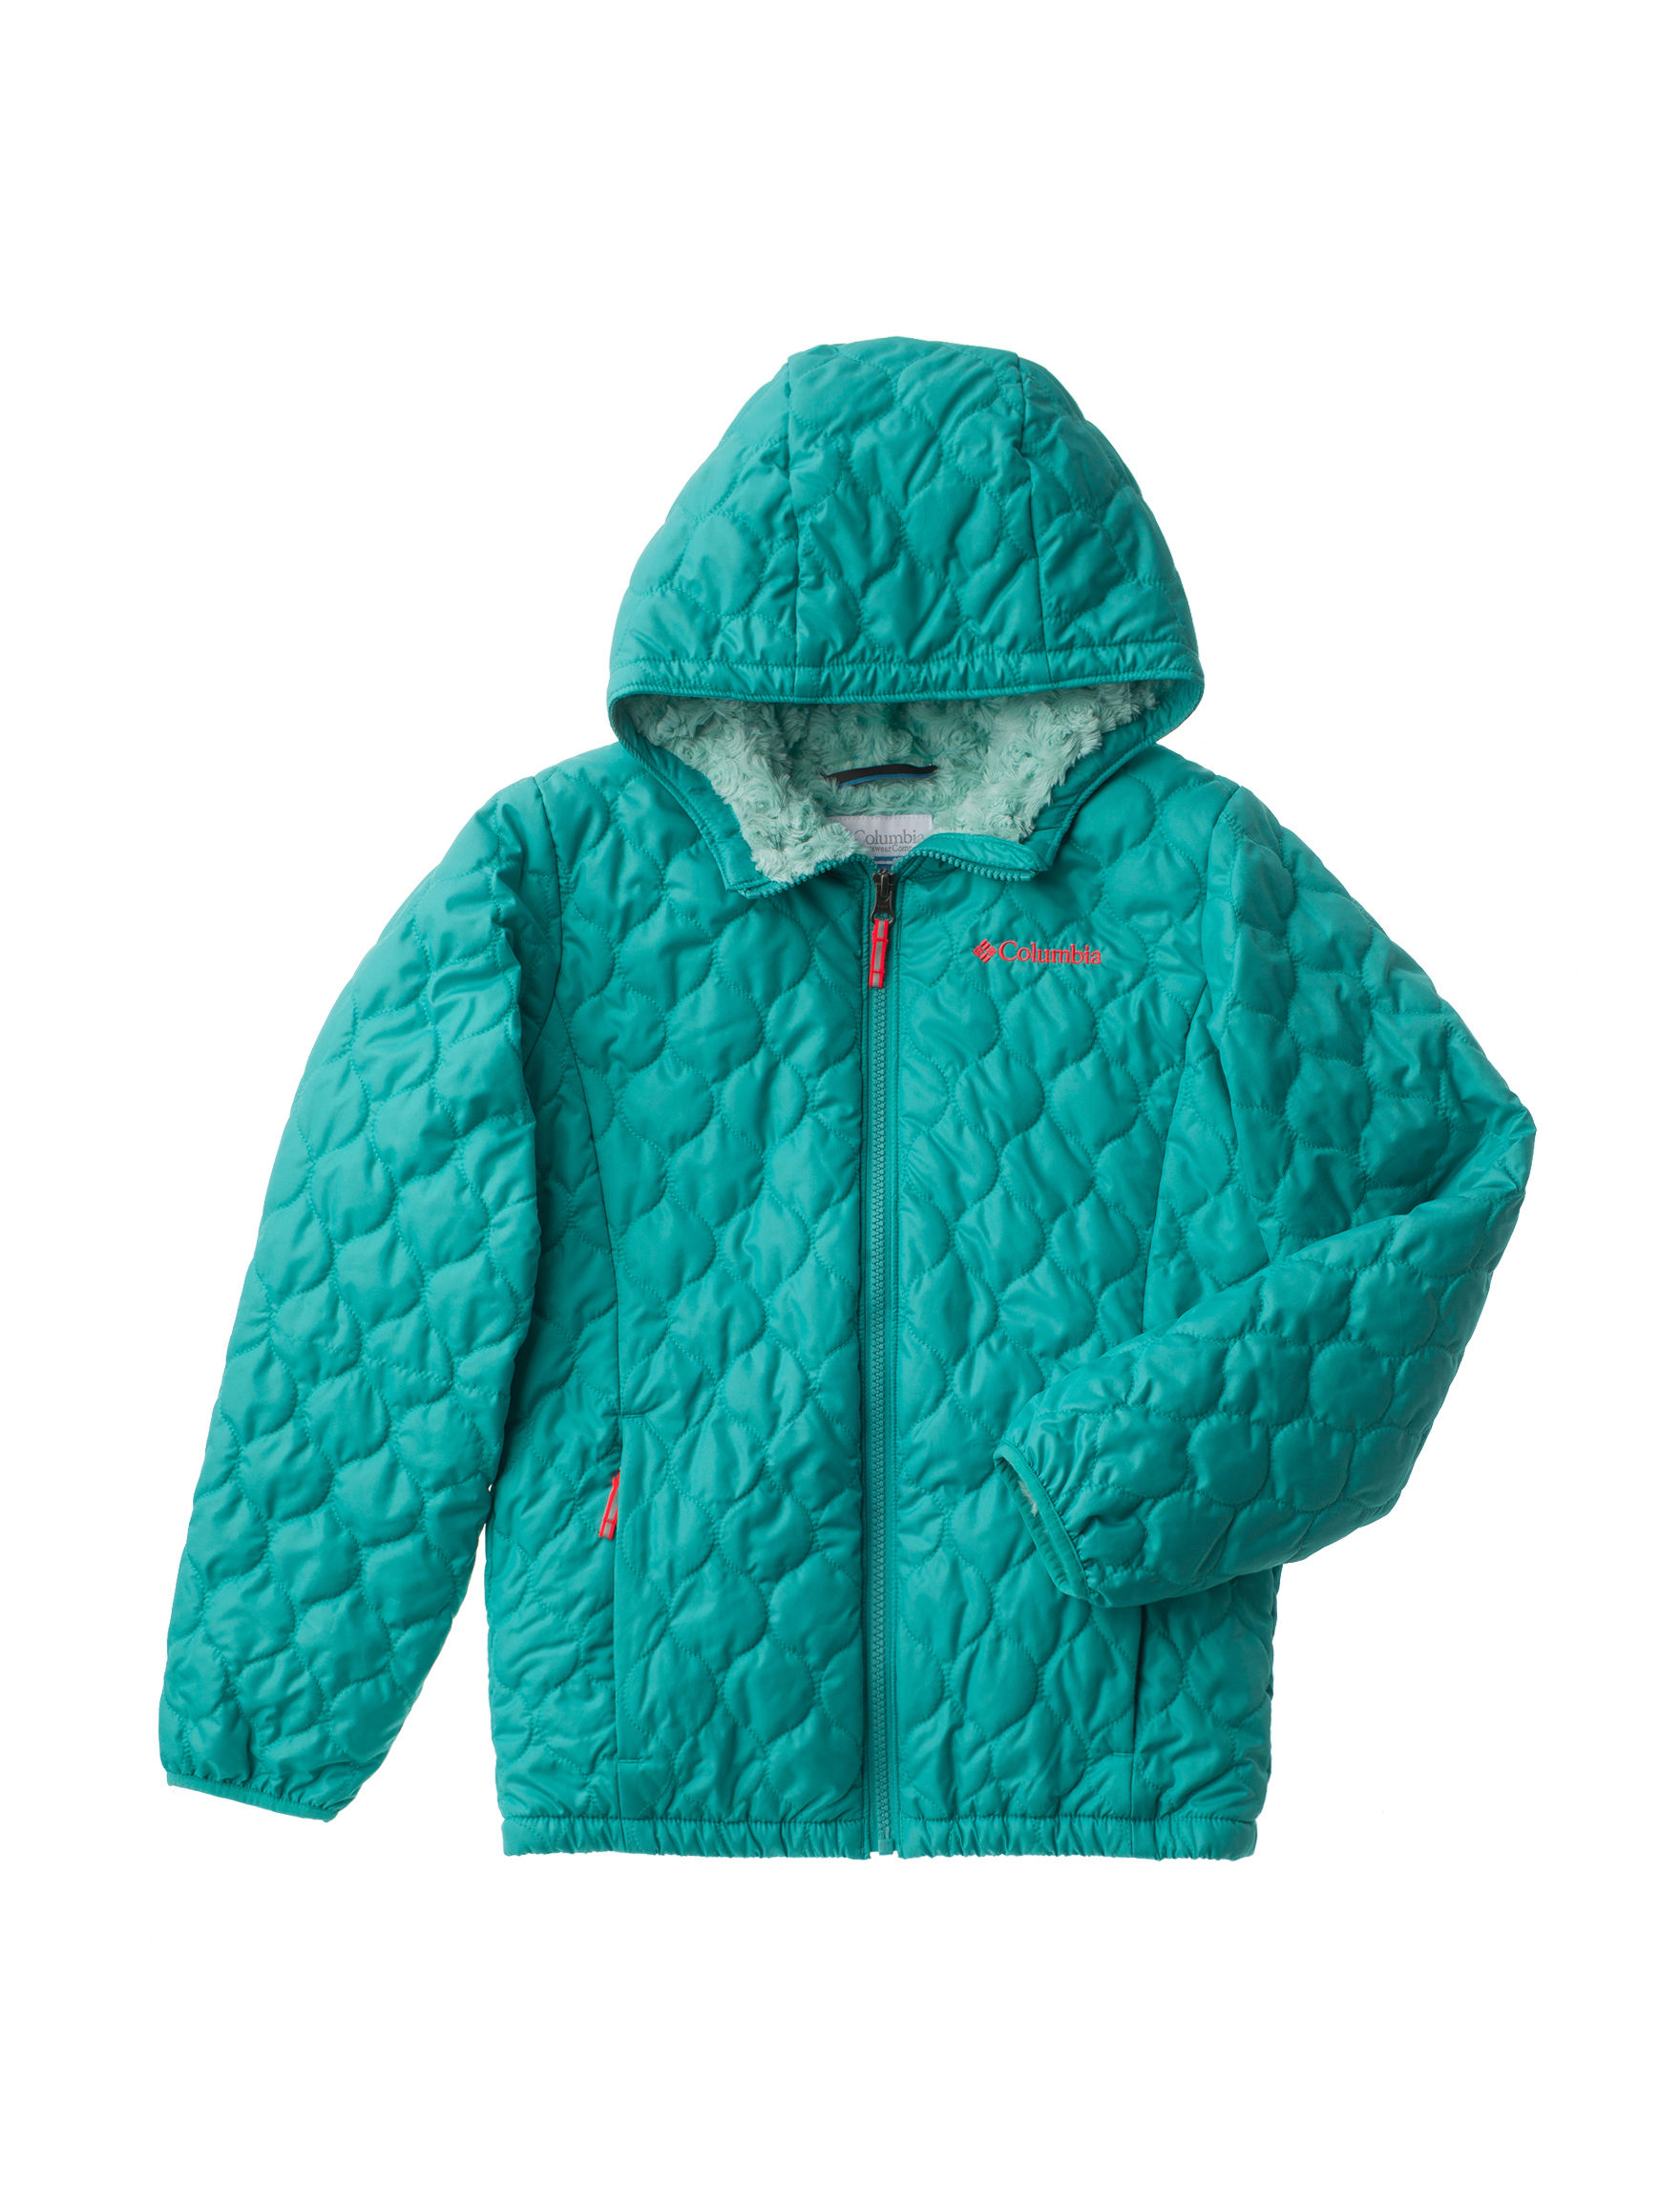 Columbia Green Fleece & Soft Shell Jackets